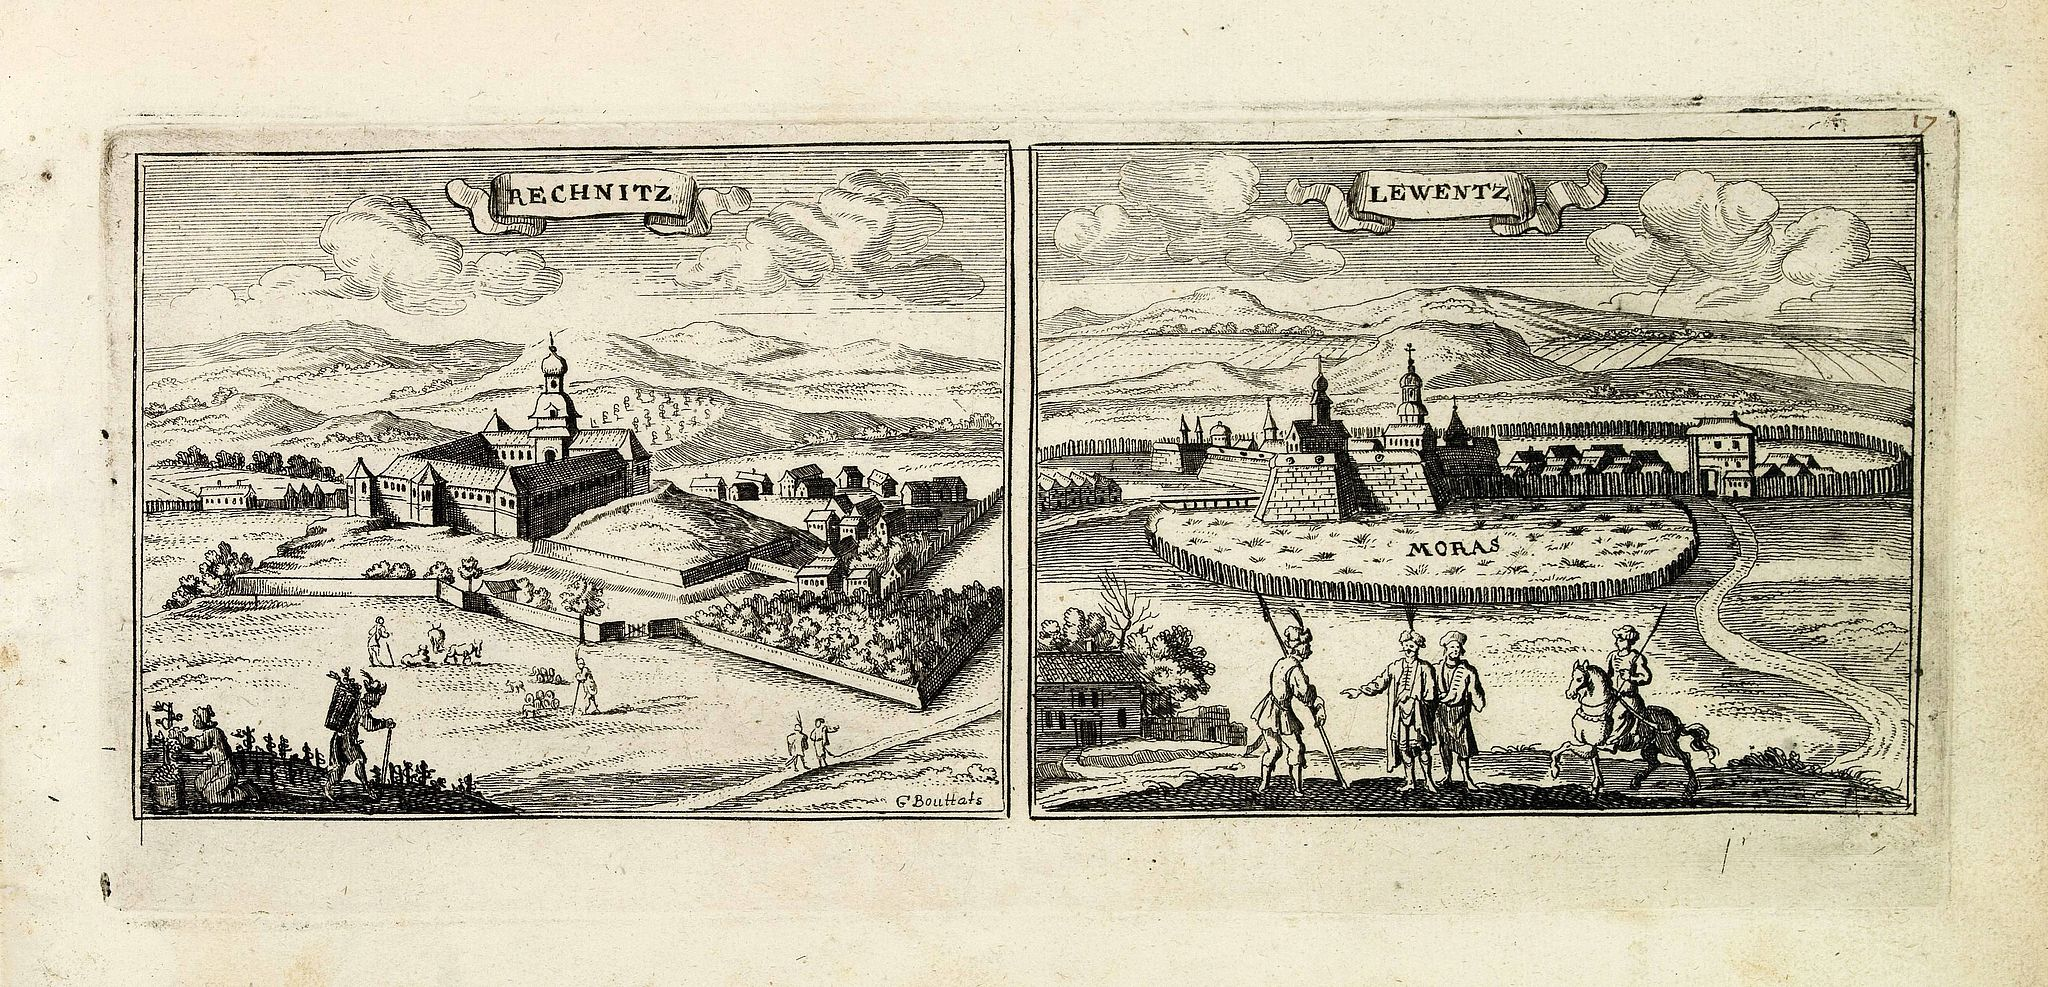 PEETERS, J. / BOUTTATS, G.,  Rechnitz / Lewentz. (Breznica and Levice), antique map, old maps